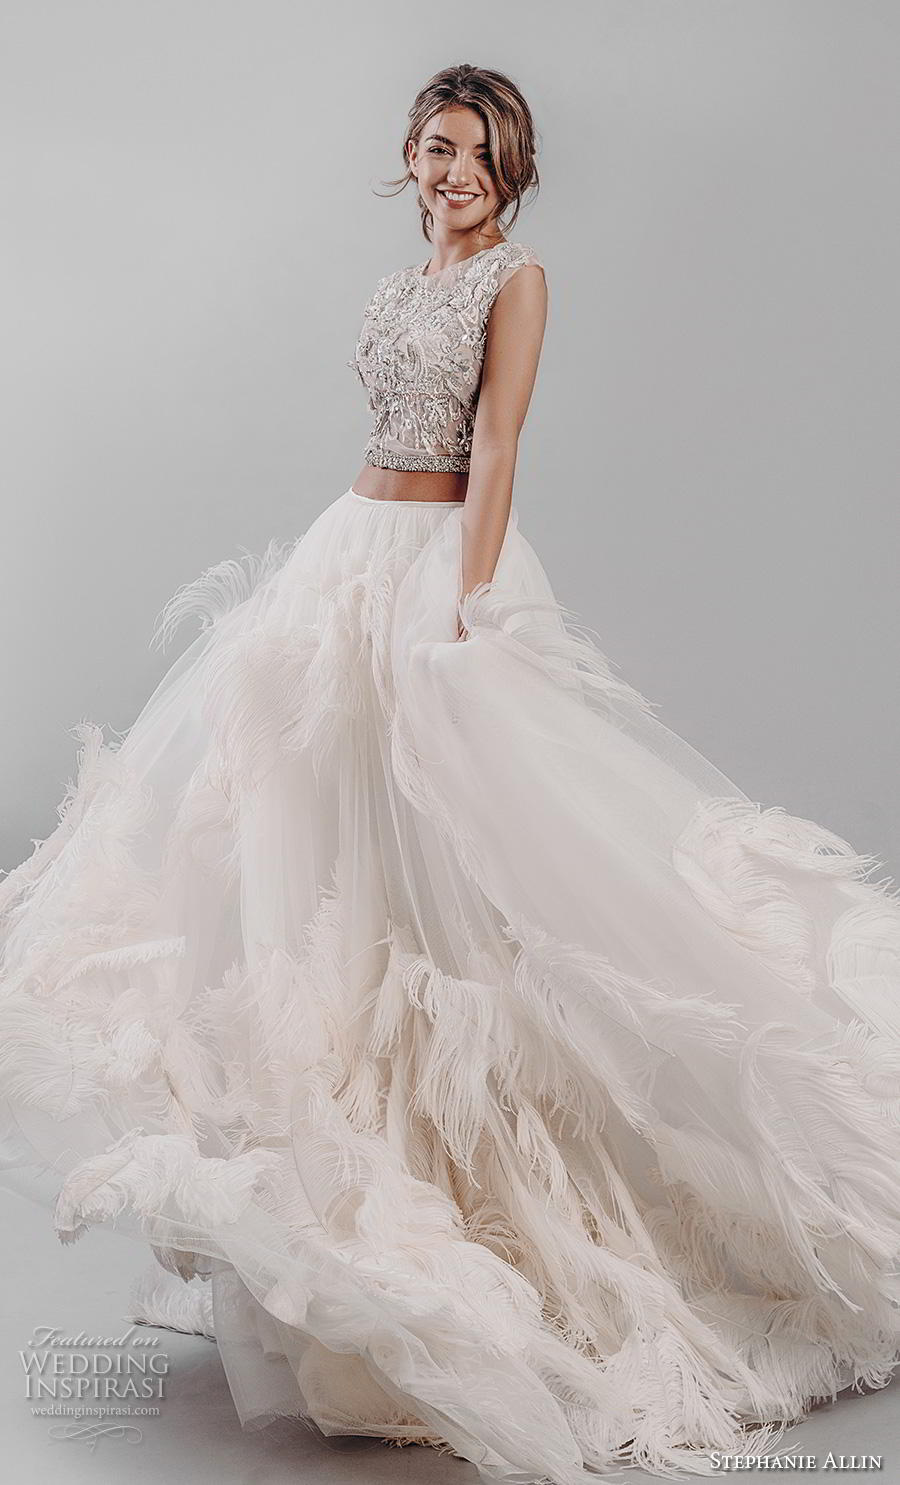 stephanie allin 2019 bridal cap sleeves jewel neck heavily embellished bodice ruffled skirt glitzy romantic glamorous a  line wedding dress sheer back (1) mv